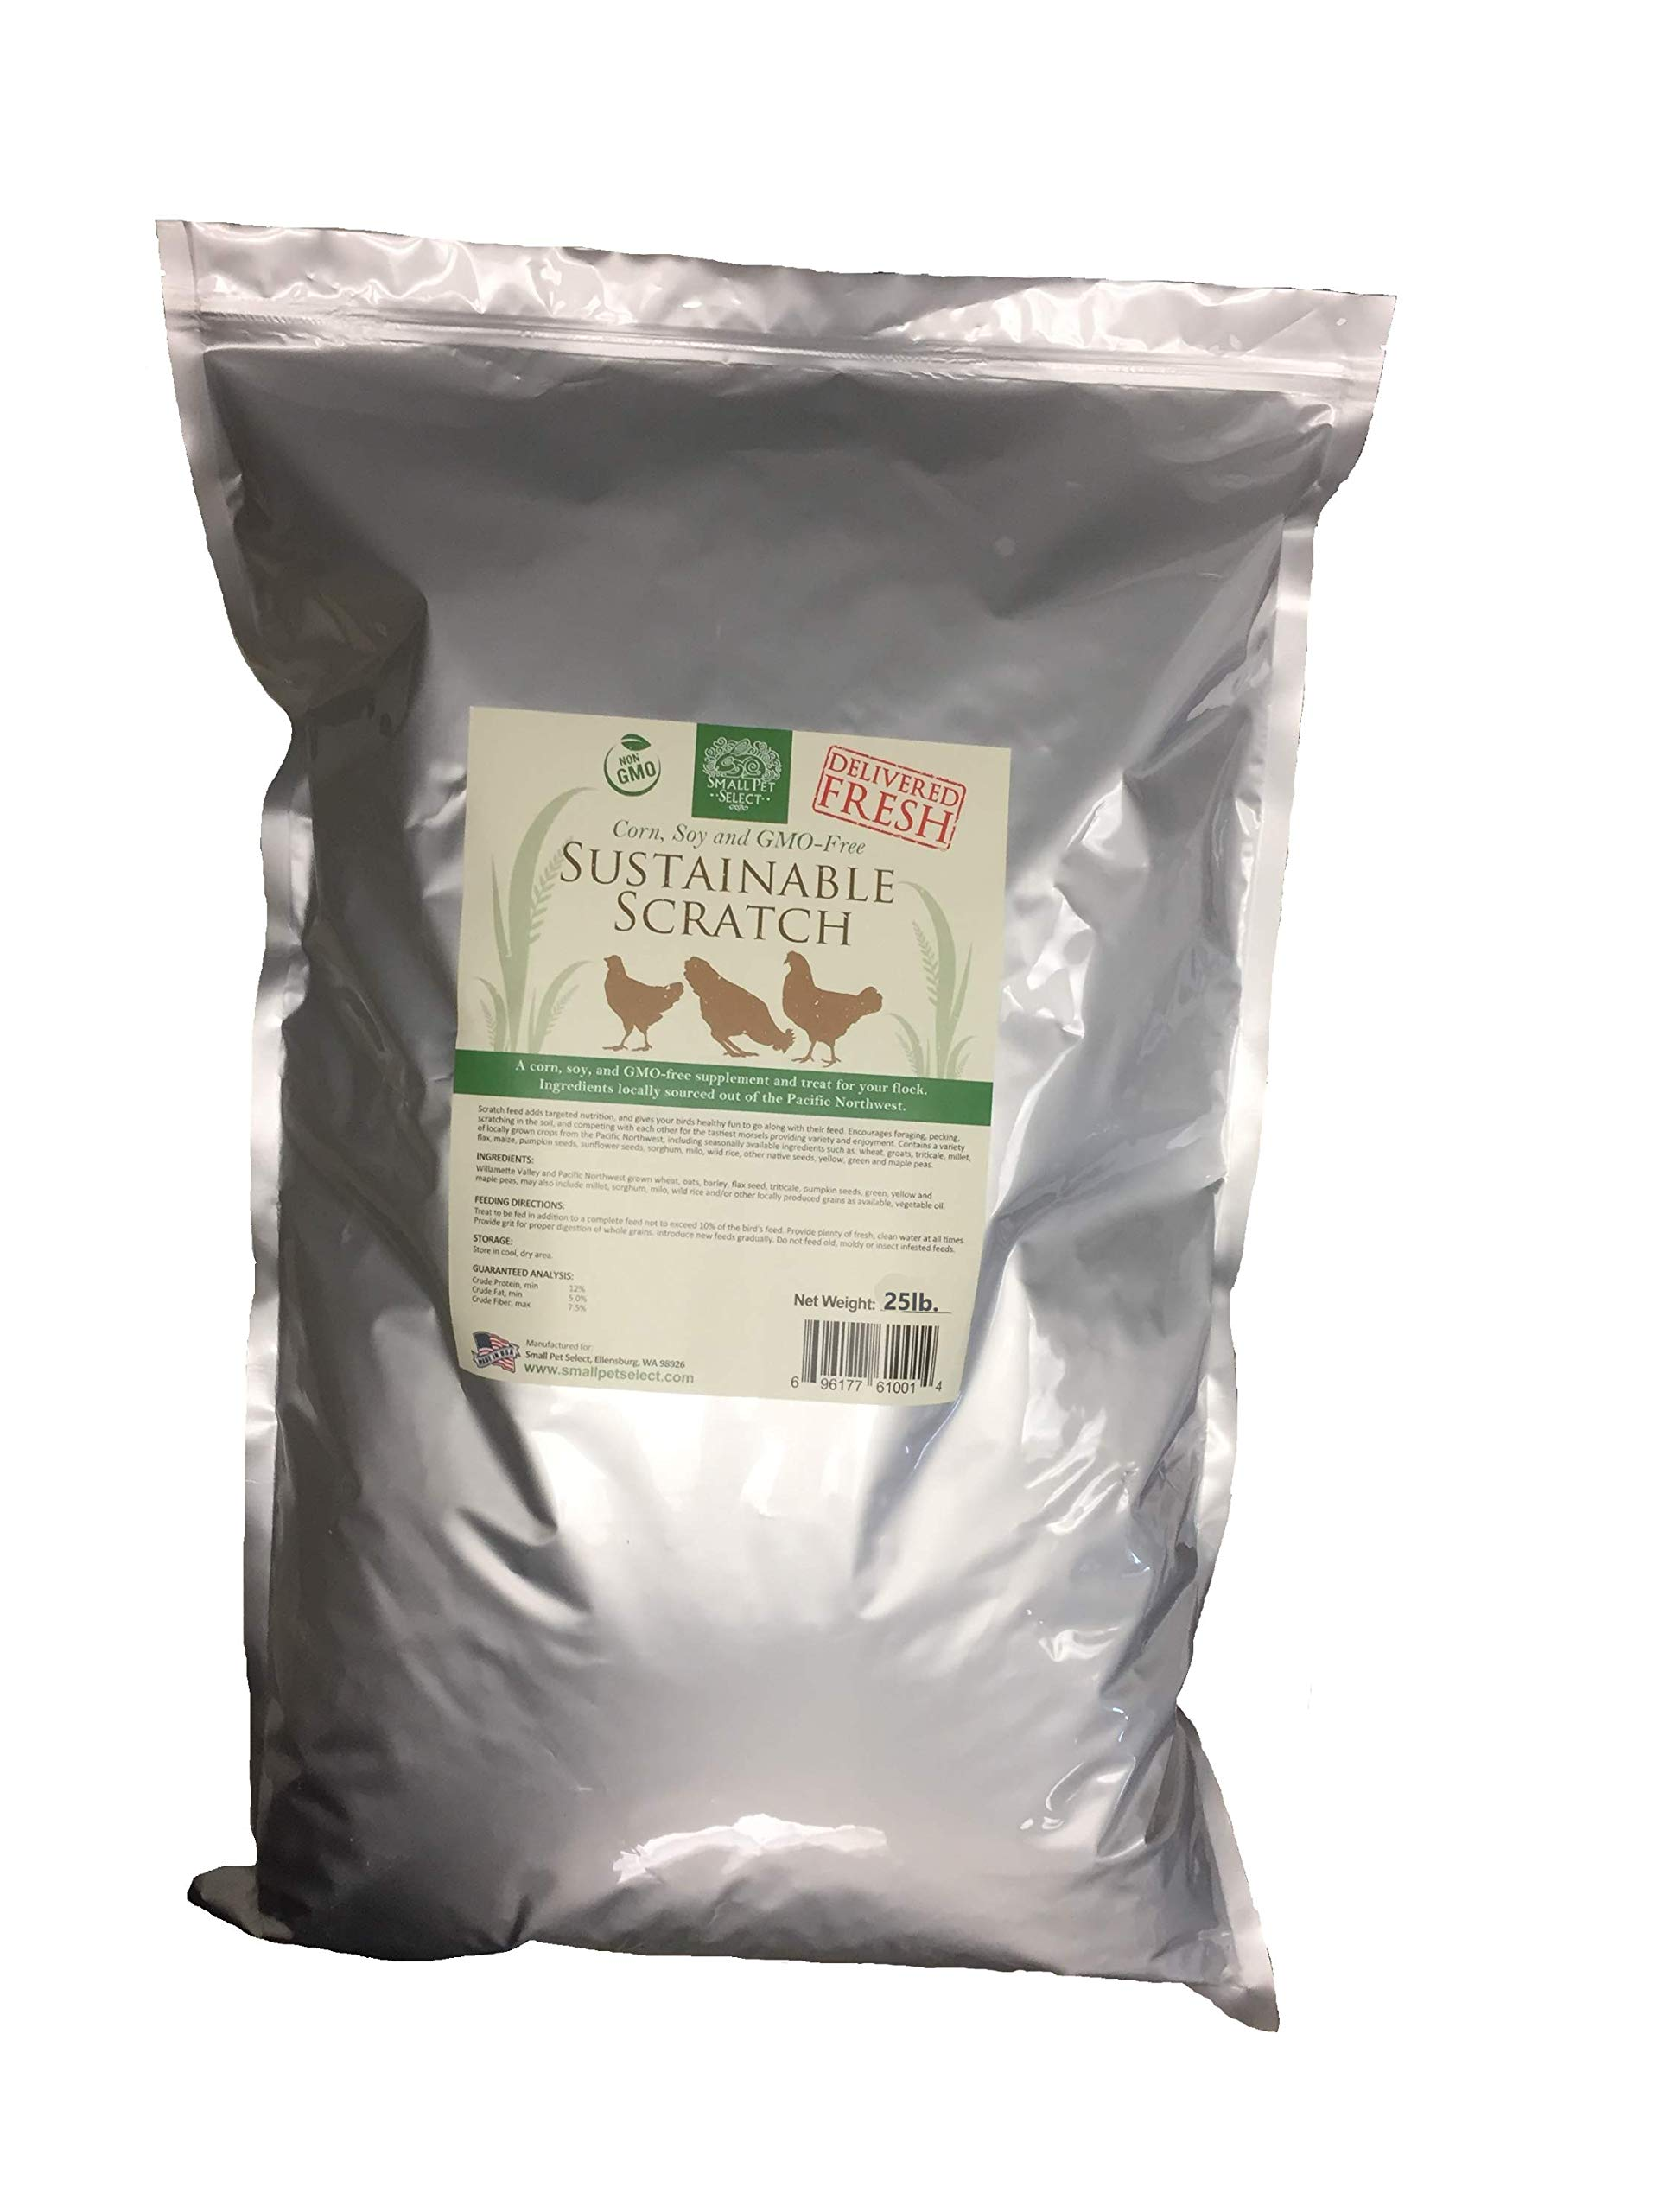 Small Pet Select Sustainable Chicken Scratch, Non-GMO, Corn Free, Soy Free. Locally Sourced & Made in Small Batches. 25 lb by Small Pet Select